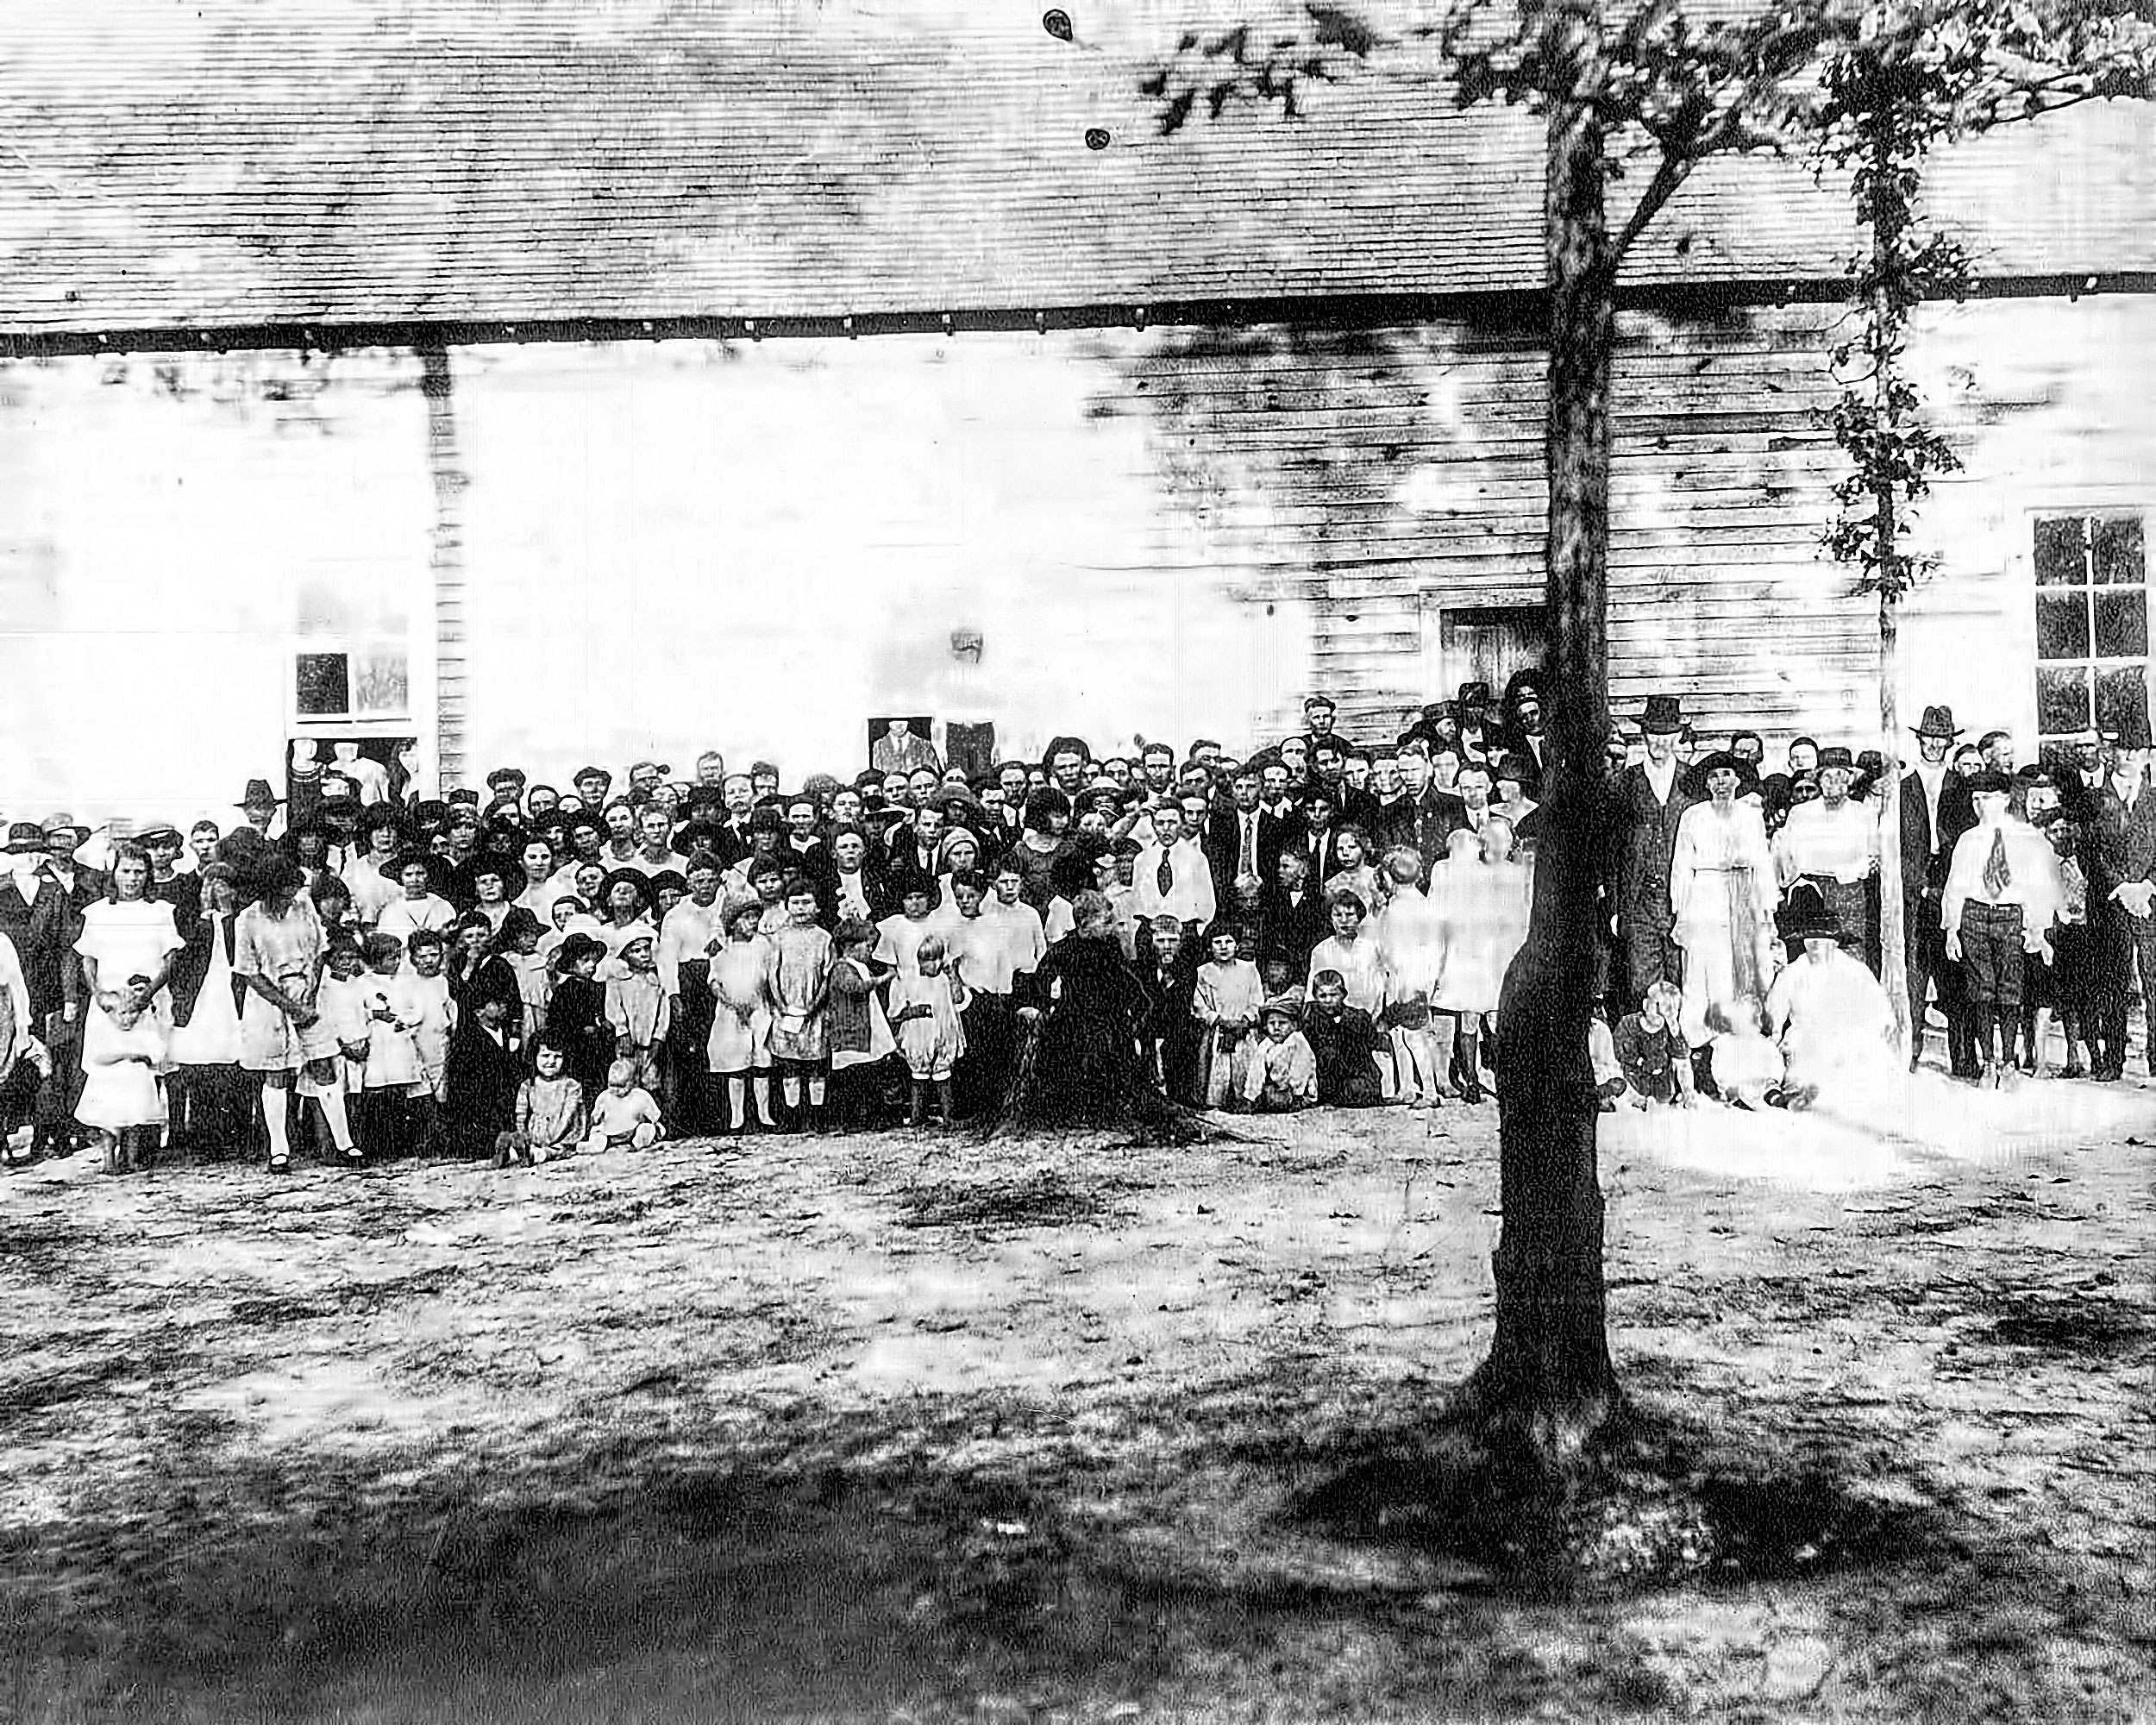 This image was labeled 1st Church picture (circa unknown). Do any old timers know anyone in the picture? or the year of this picture? Is this the 1st church building?